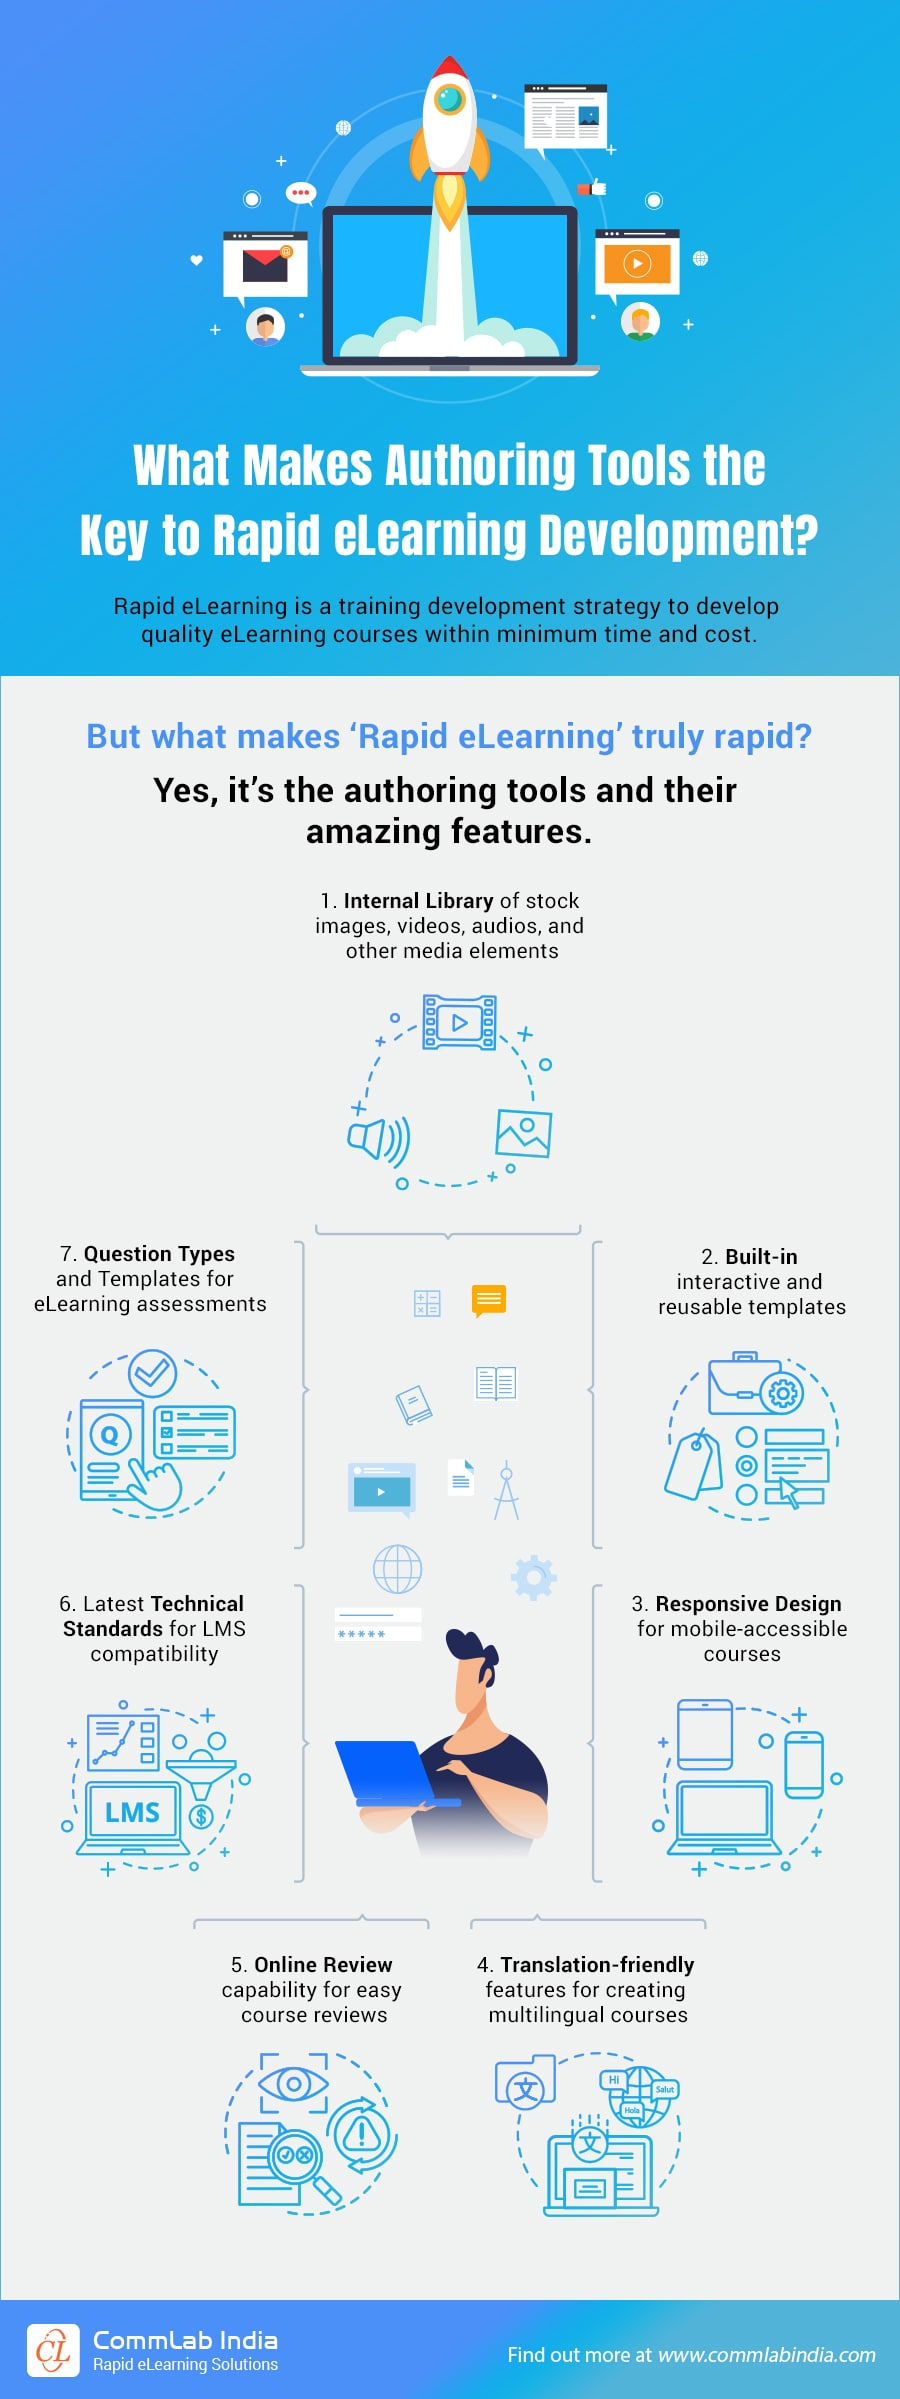 Rapid eLearning Development: What Role Do Authoring Tools Play?